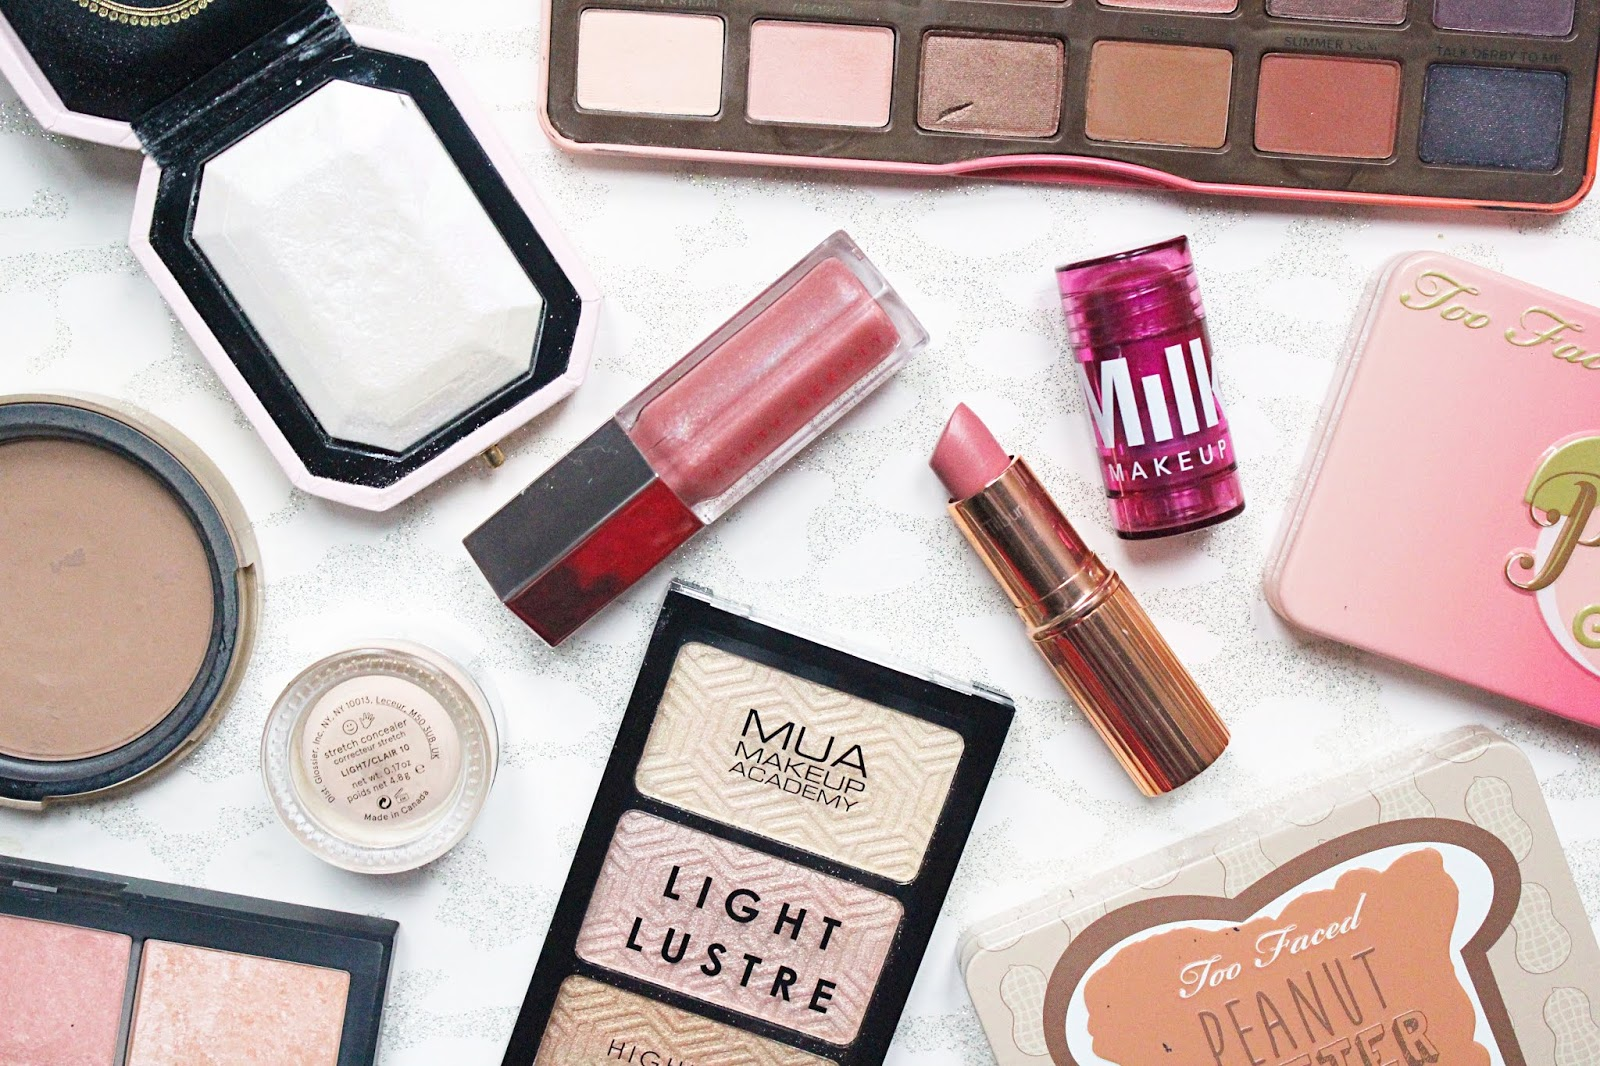 My Desert Island Makeup Picks